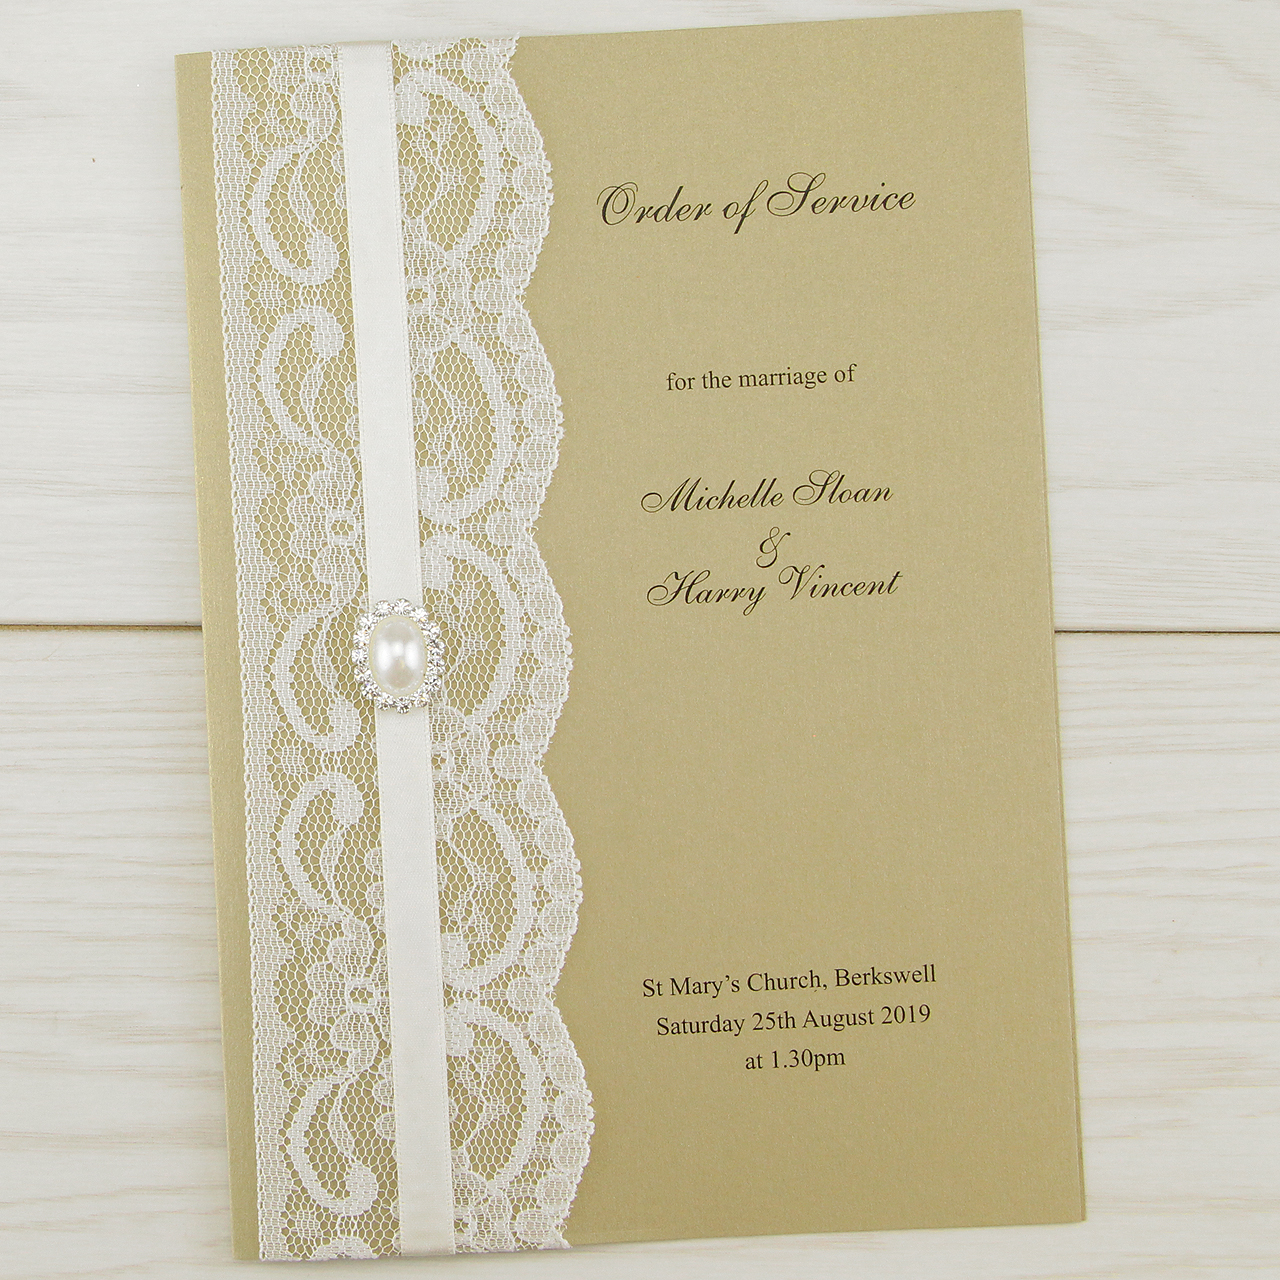 When Should Wedding Invitations Be Ordered: Vintage Lace Order Of Service